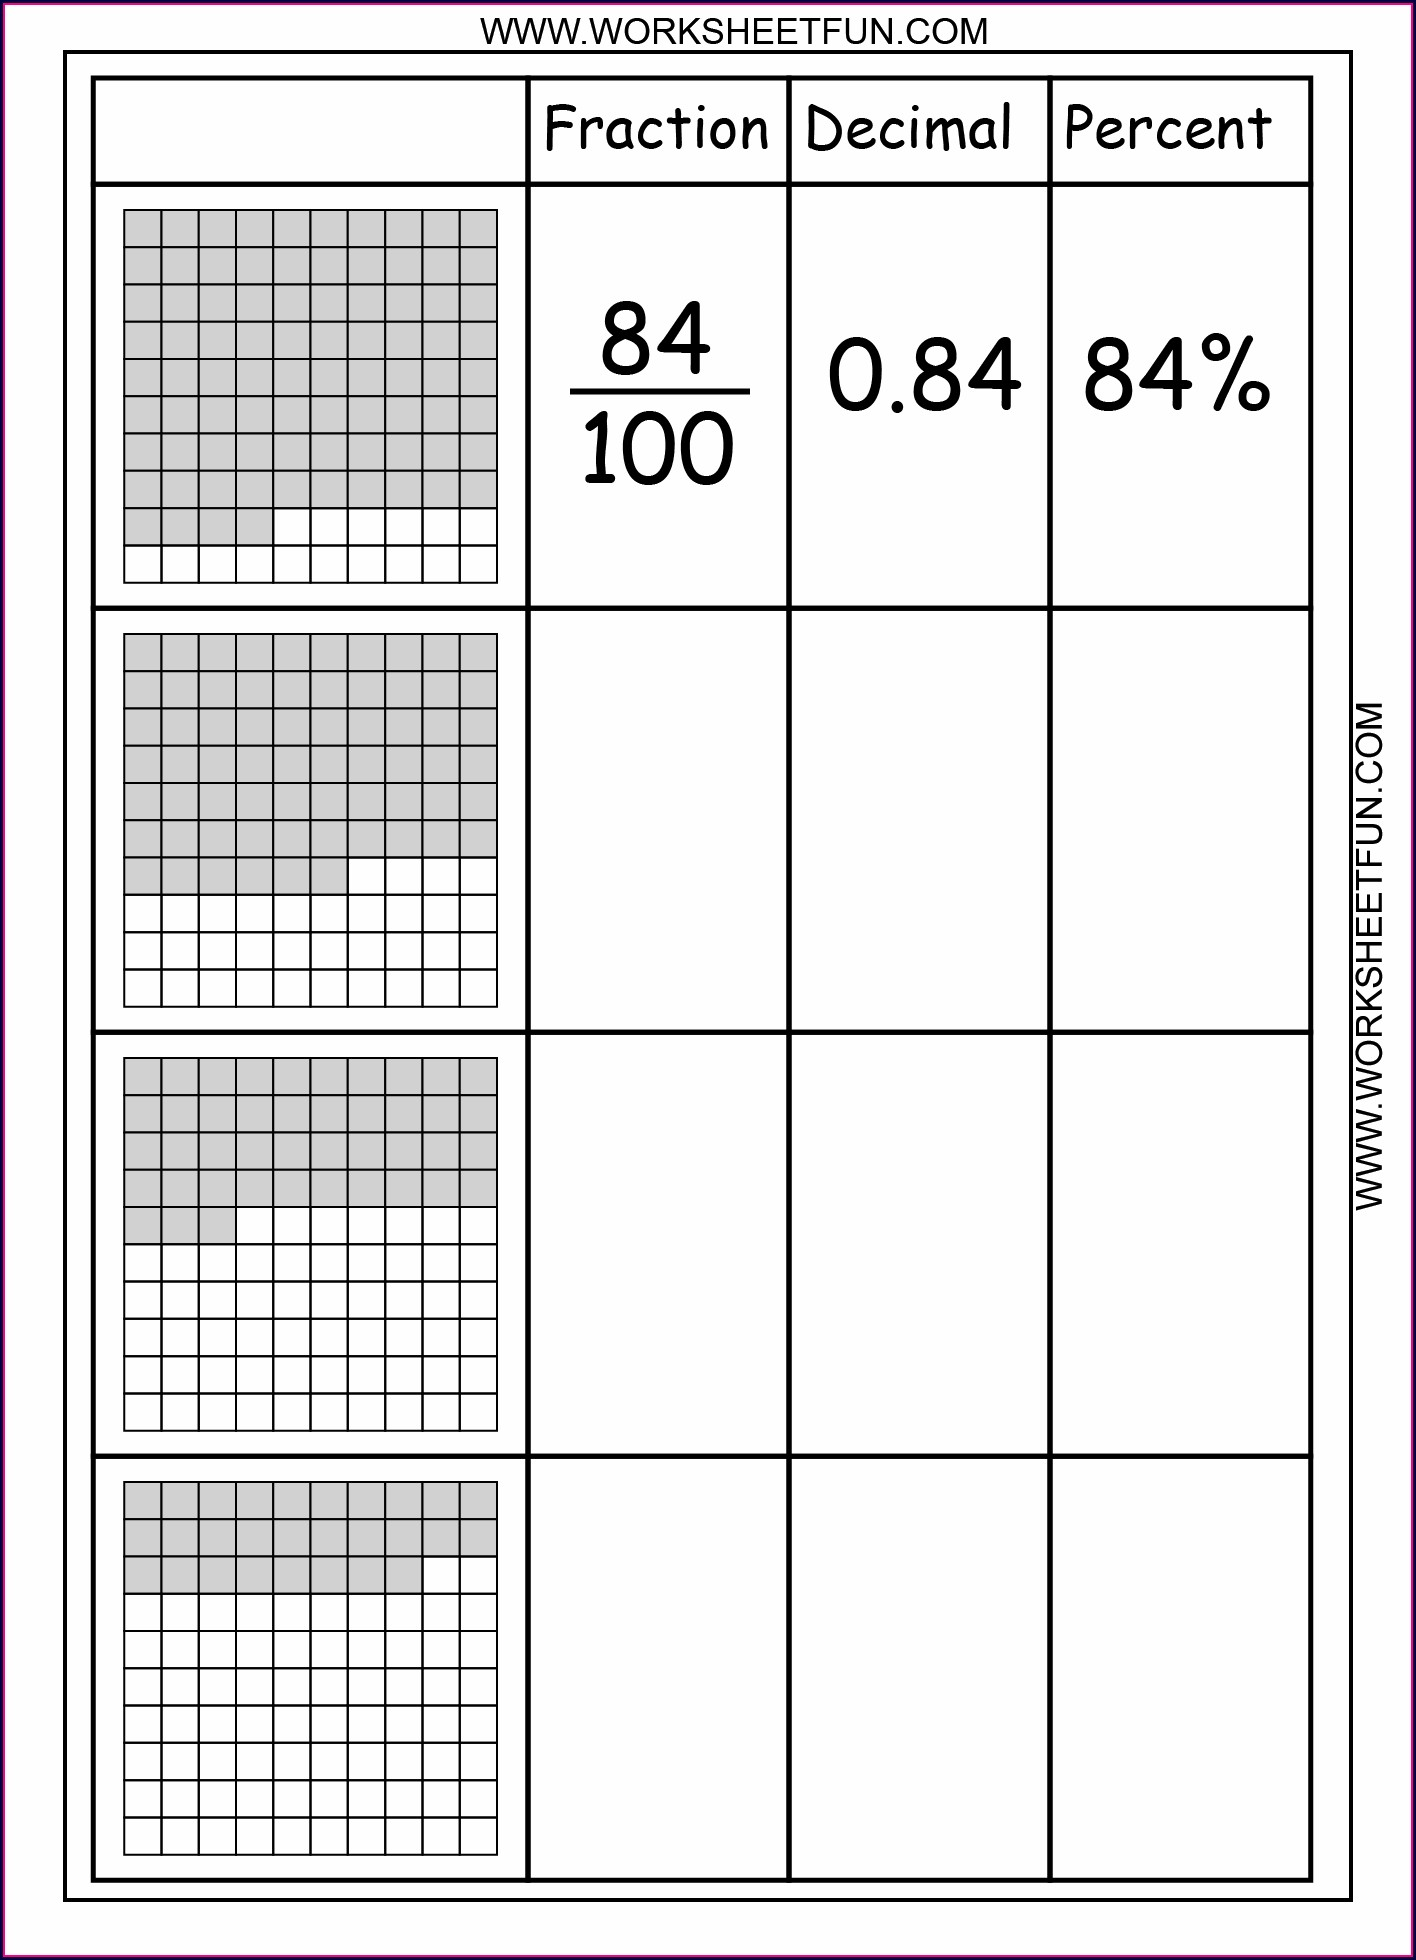 Fractions Worksheet For Year 3